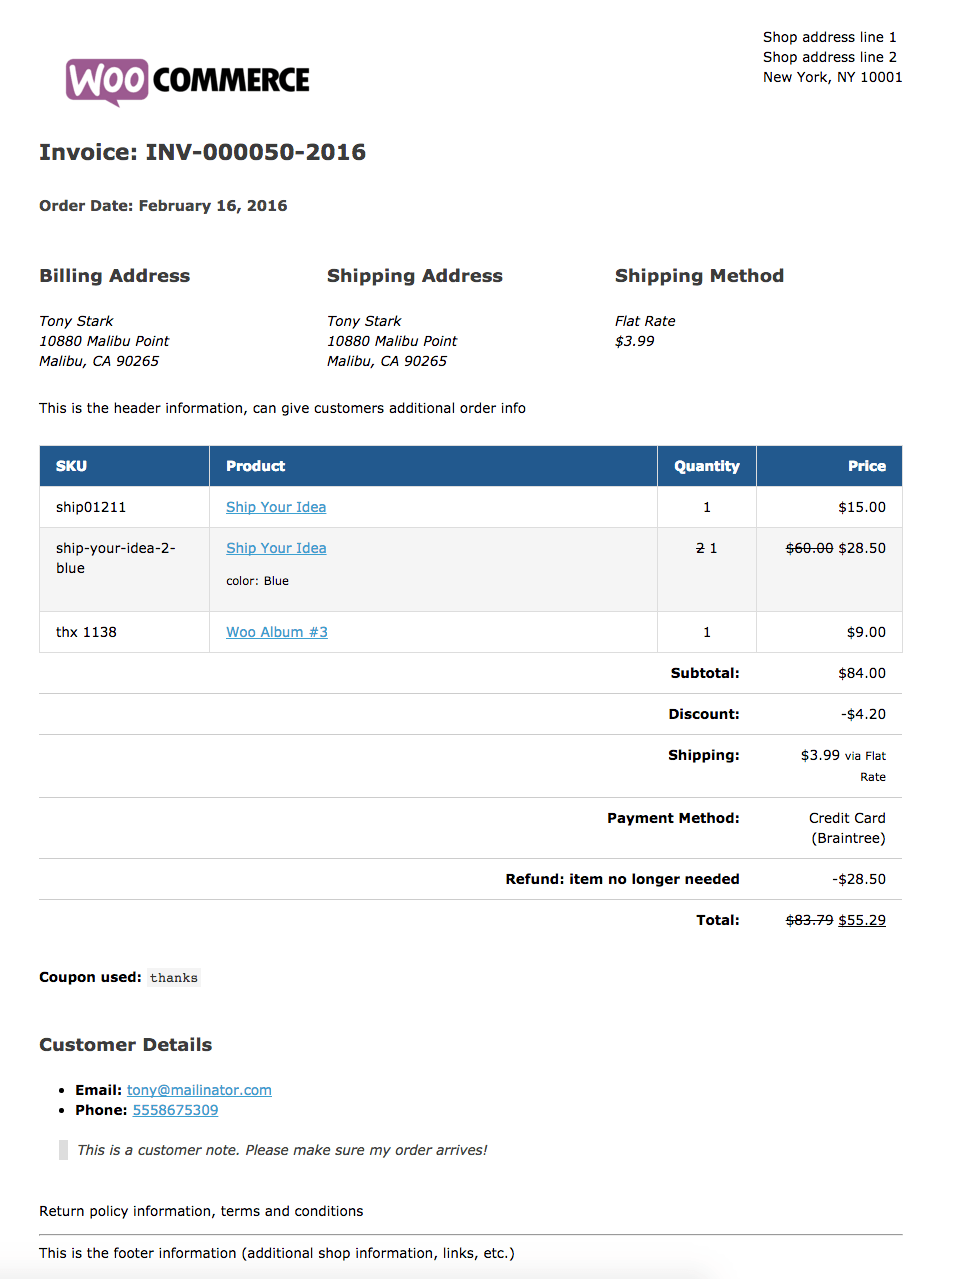 Aldiablosus  Splendid Print Invoices Amp Packing Lists  Woocommerce With Fair View A Sample Invoice  With Nice Receipt Format In Doc Also Form Receipt For Payment In Addition Neat Receipt Alternative And What Is A Receipt Book As Well As Motorcycle Sales Receipt Additionally Receipts Scanner Reviews From Woocommercecom With Aldiablosus  Fair Print Invoices Amp Packing Lists  Woocommerce With Nice View A Sample Invoice  And Splendid Receipt Format In Doc Also Form Receipt For Payment In Addition Neat Receipt Alternative From Woocommercecom